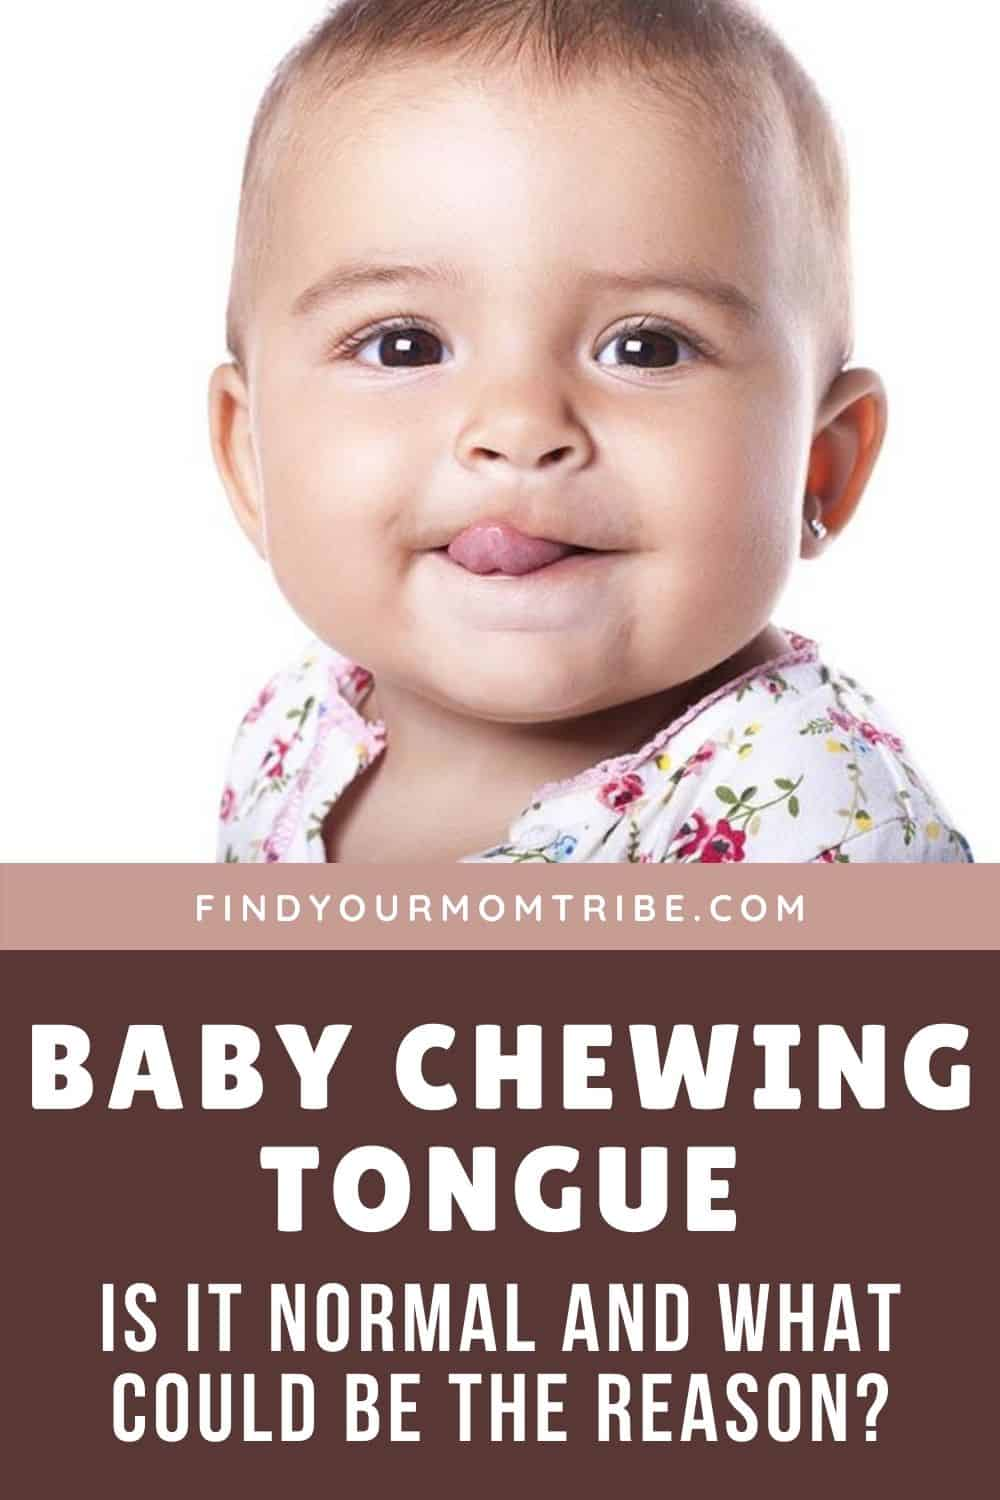 Baby Chewing Tongue - Is It Normal And What Could Be The Reason?